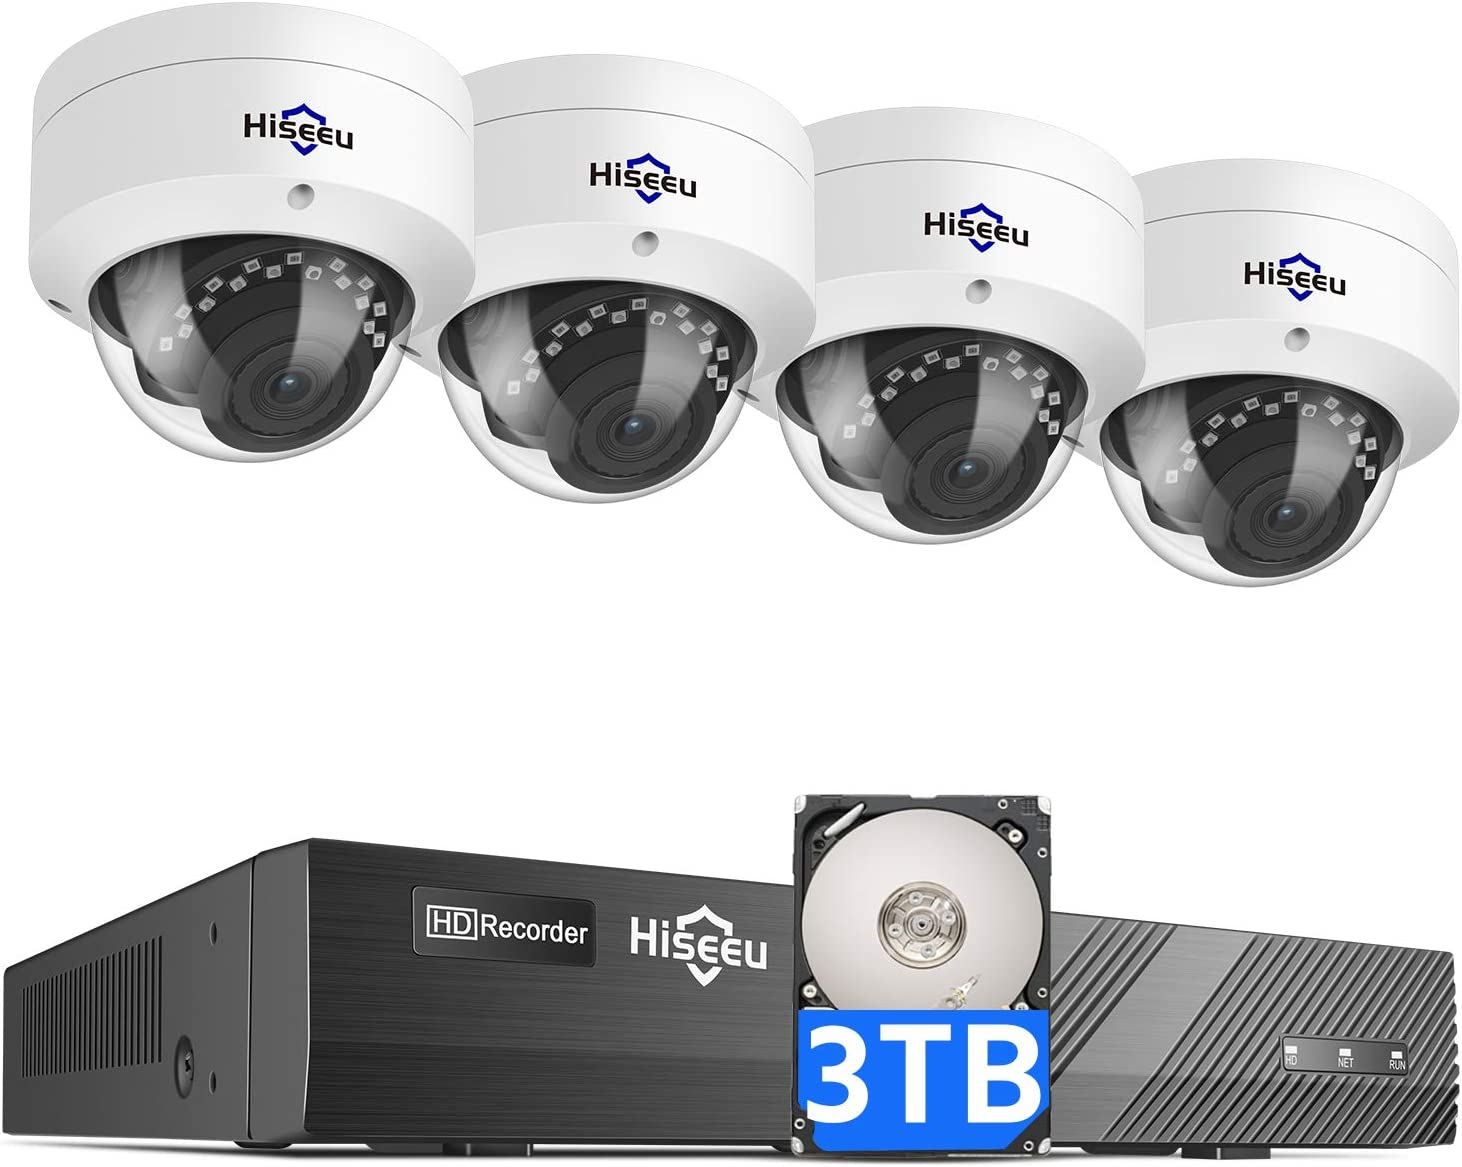 Hiseeu 5MP PoE Security Camera System with 3TB Hard Drive,8 Channel 5MP DVR Security System with 4pcs Dome PoE IP Camera for Home Security,Night Vision,IP66 Waterproof,1-Way Audio,Onvif Support